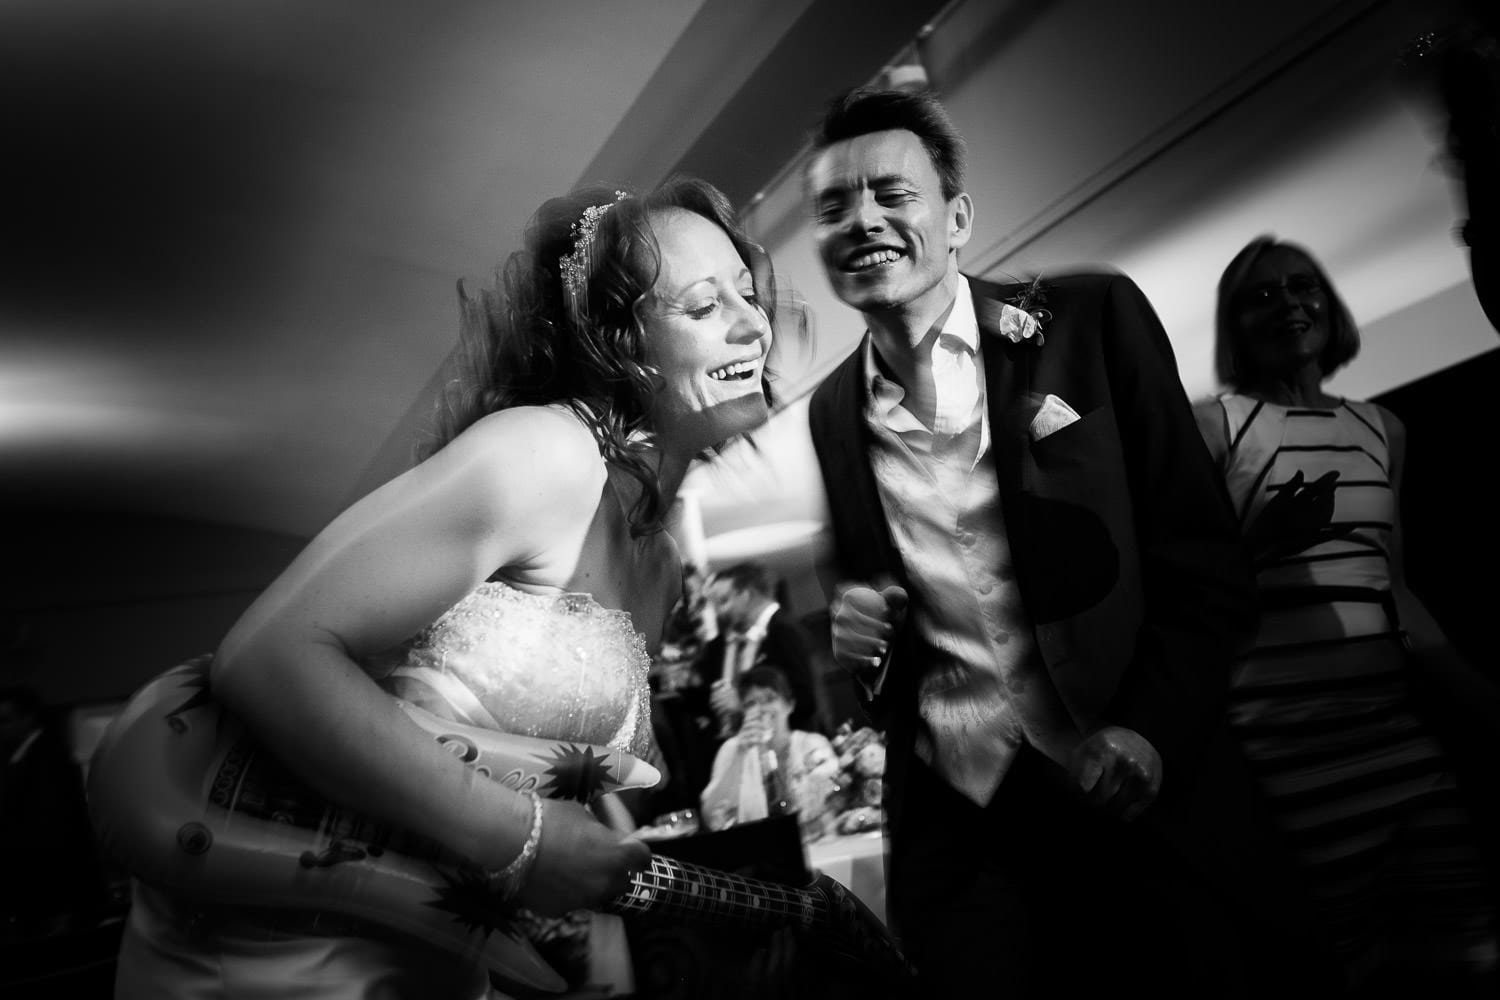 The bride plays a blow up guitar